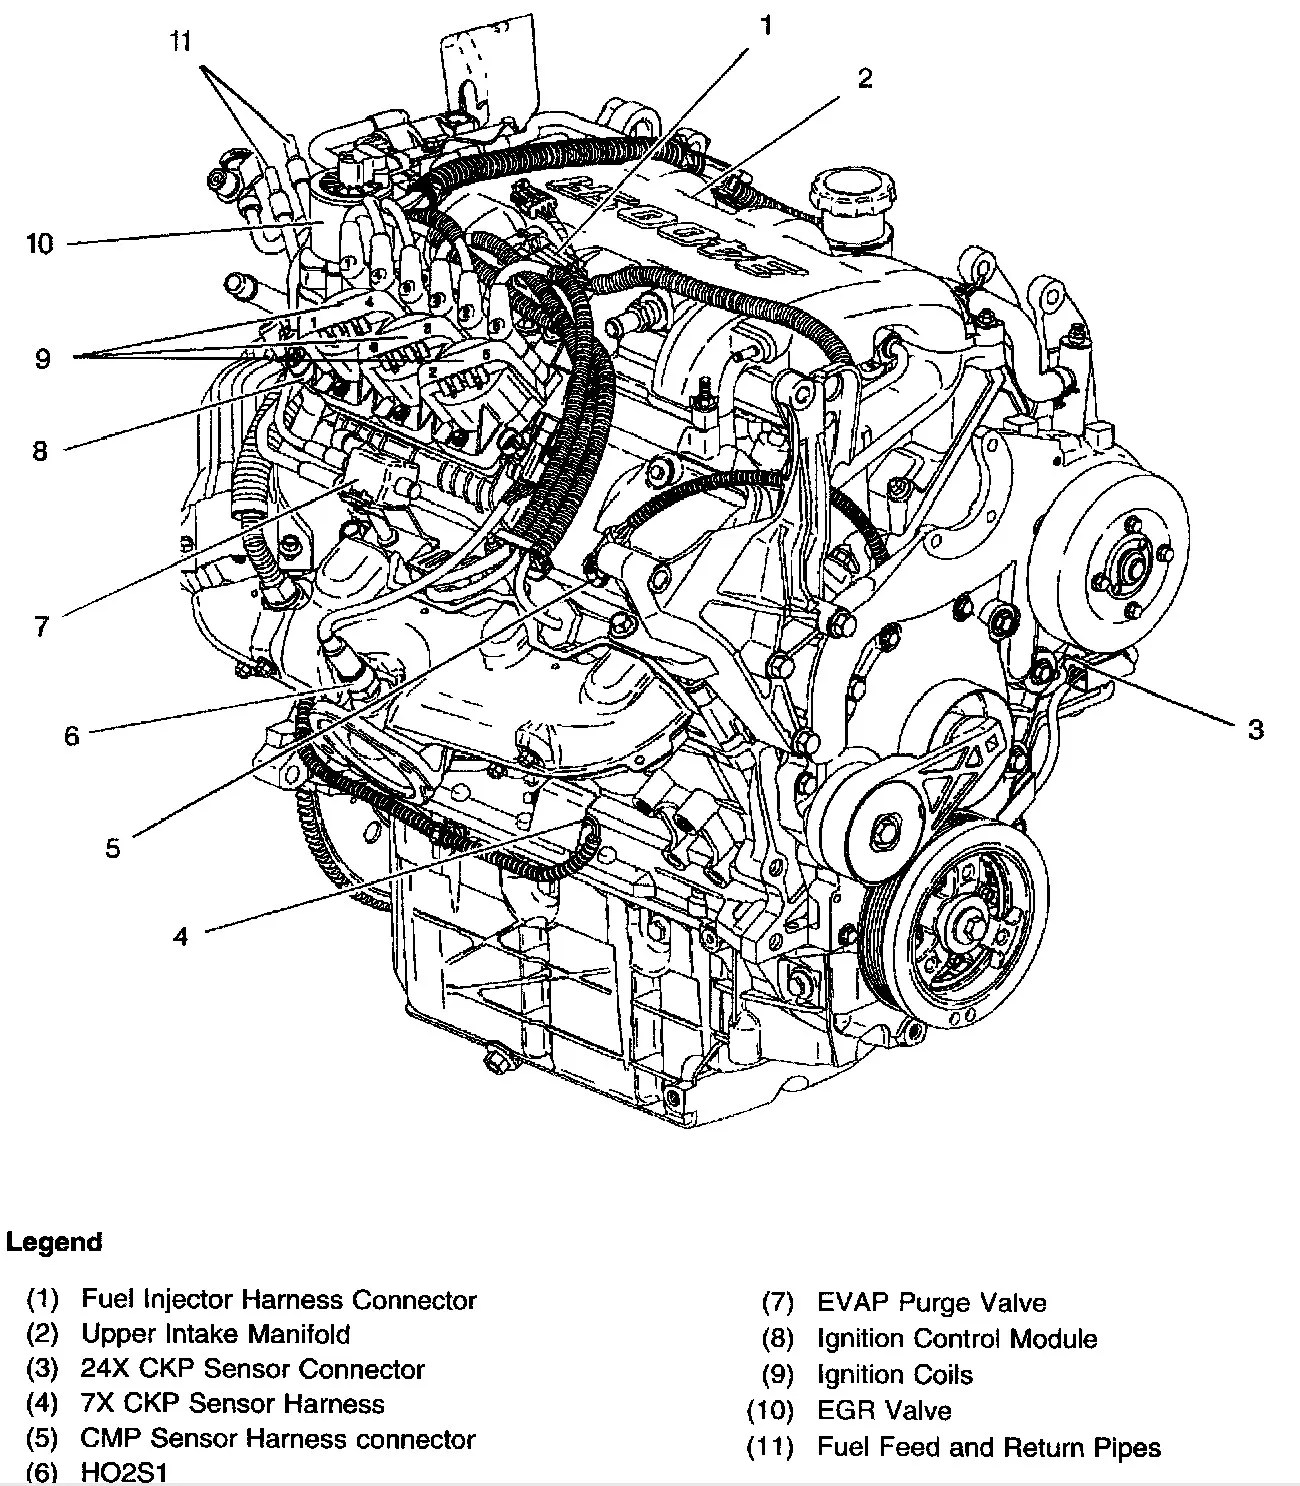 hight resolution of 4 2 litre chevy engine diagram electrical schematic wiring diagram 5 3 liter chevy engine diagram